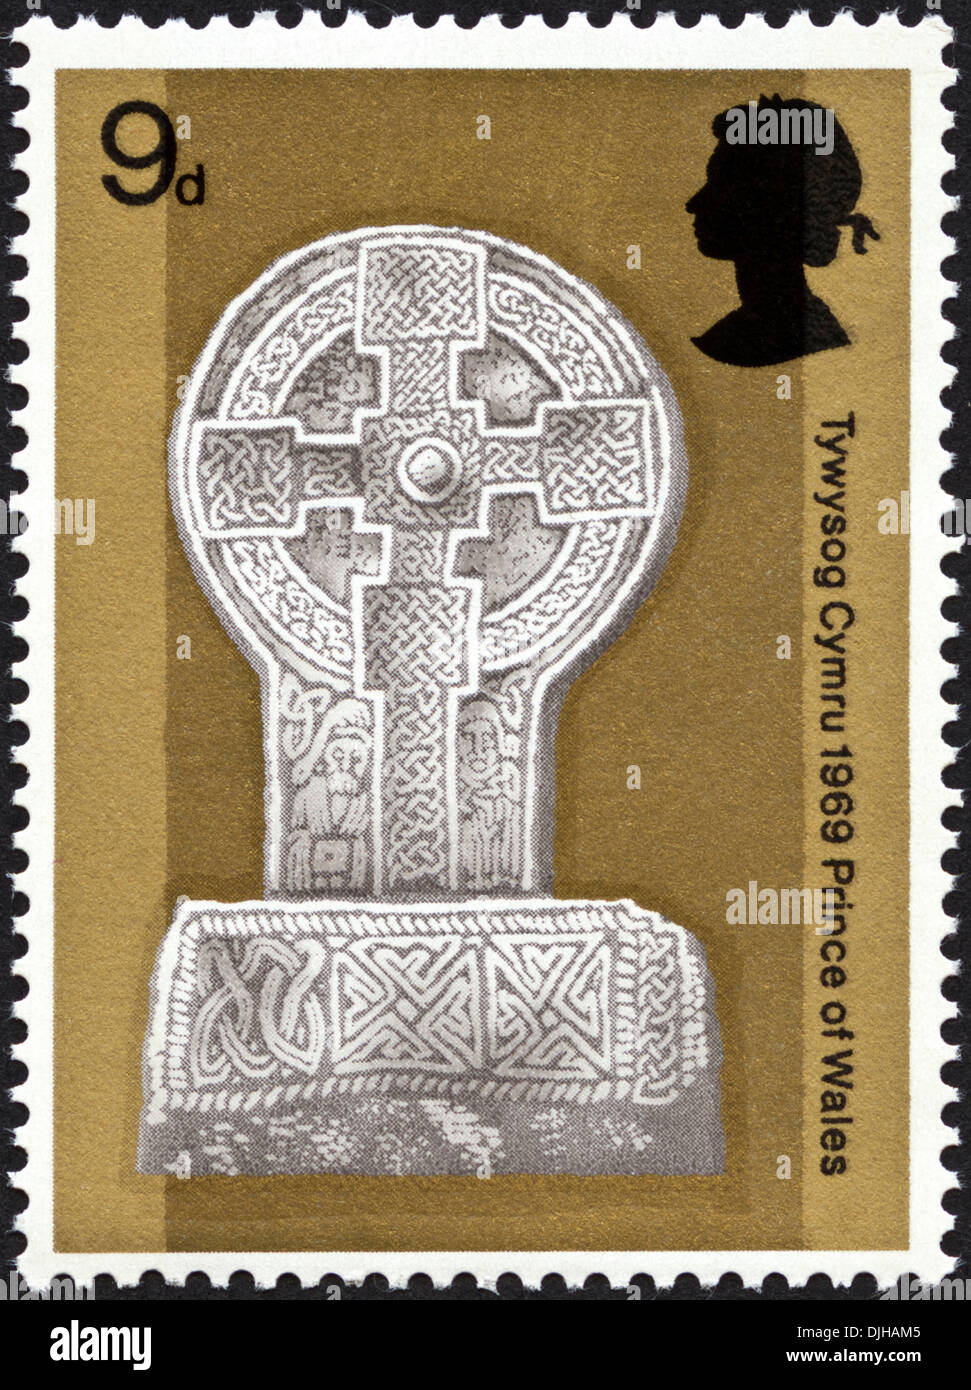 postage stamp United Kingdom 9d featuring Investiture of Prince of Wales dated 1969 bilingual Welsh English language - Stock Image